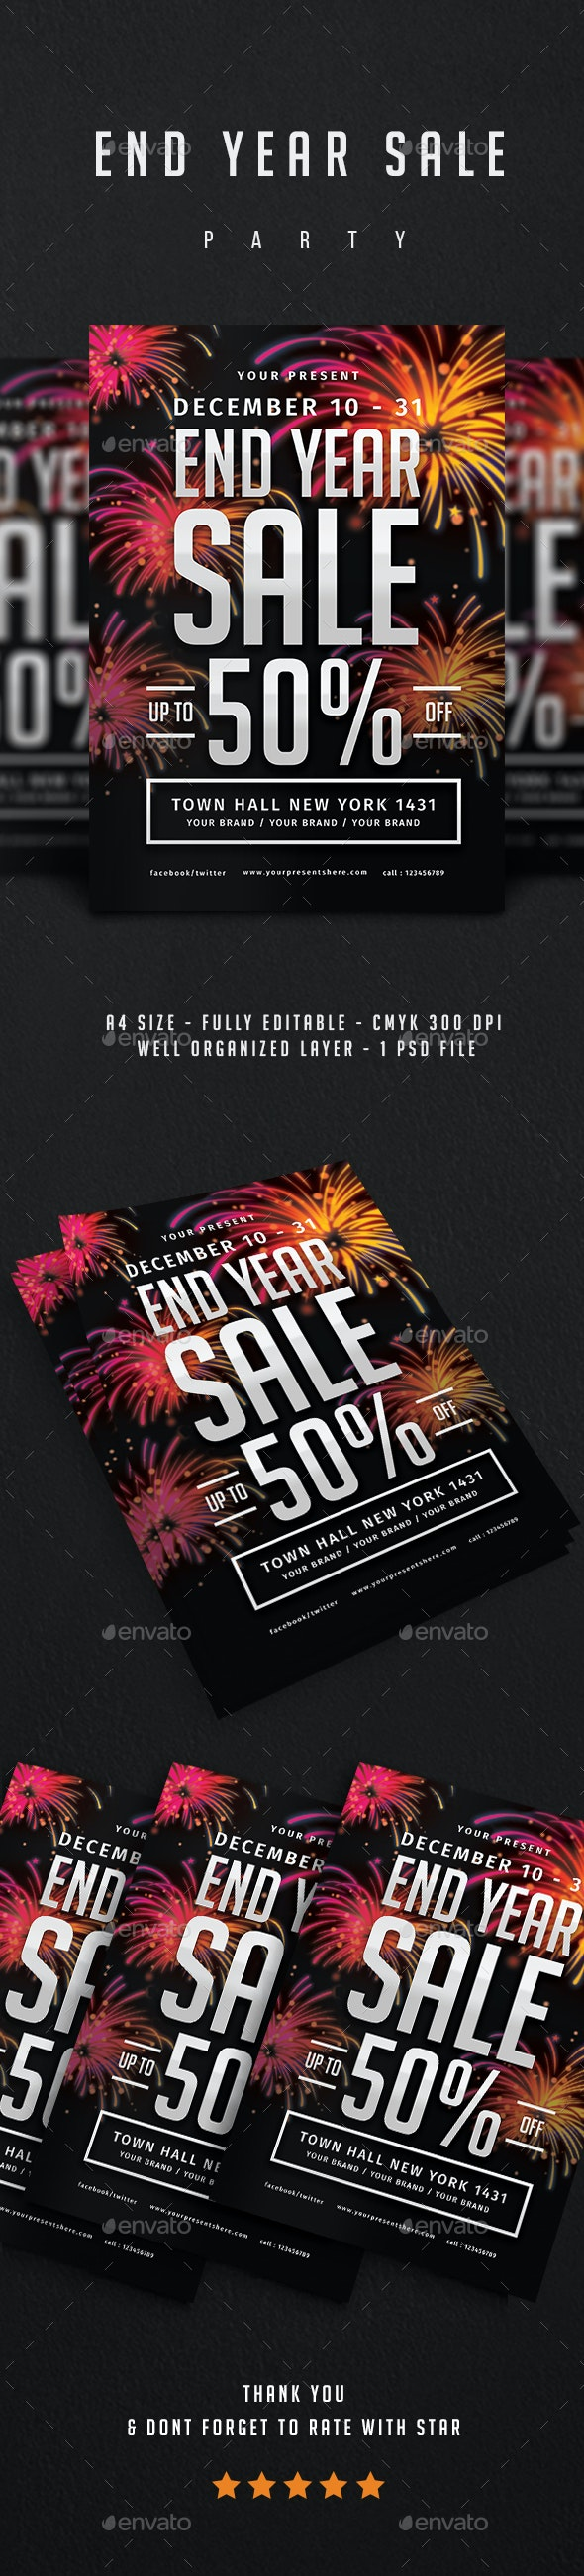 End Year Sale Flyer - Flyers Print Templates